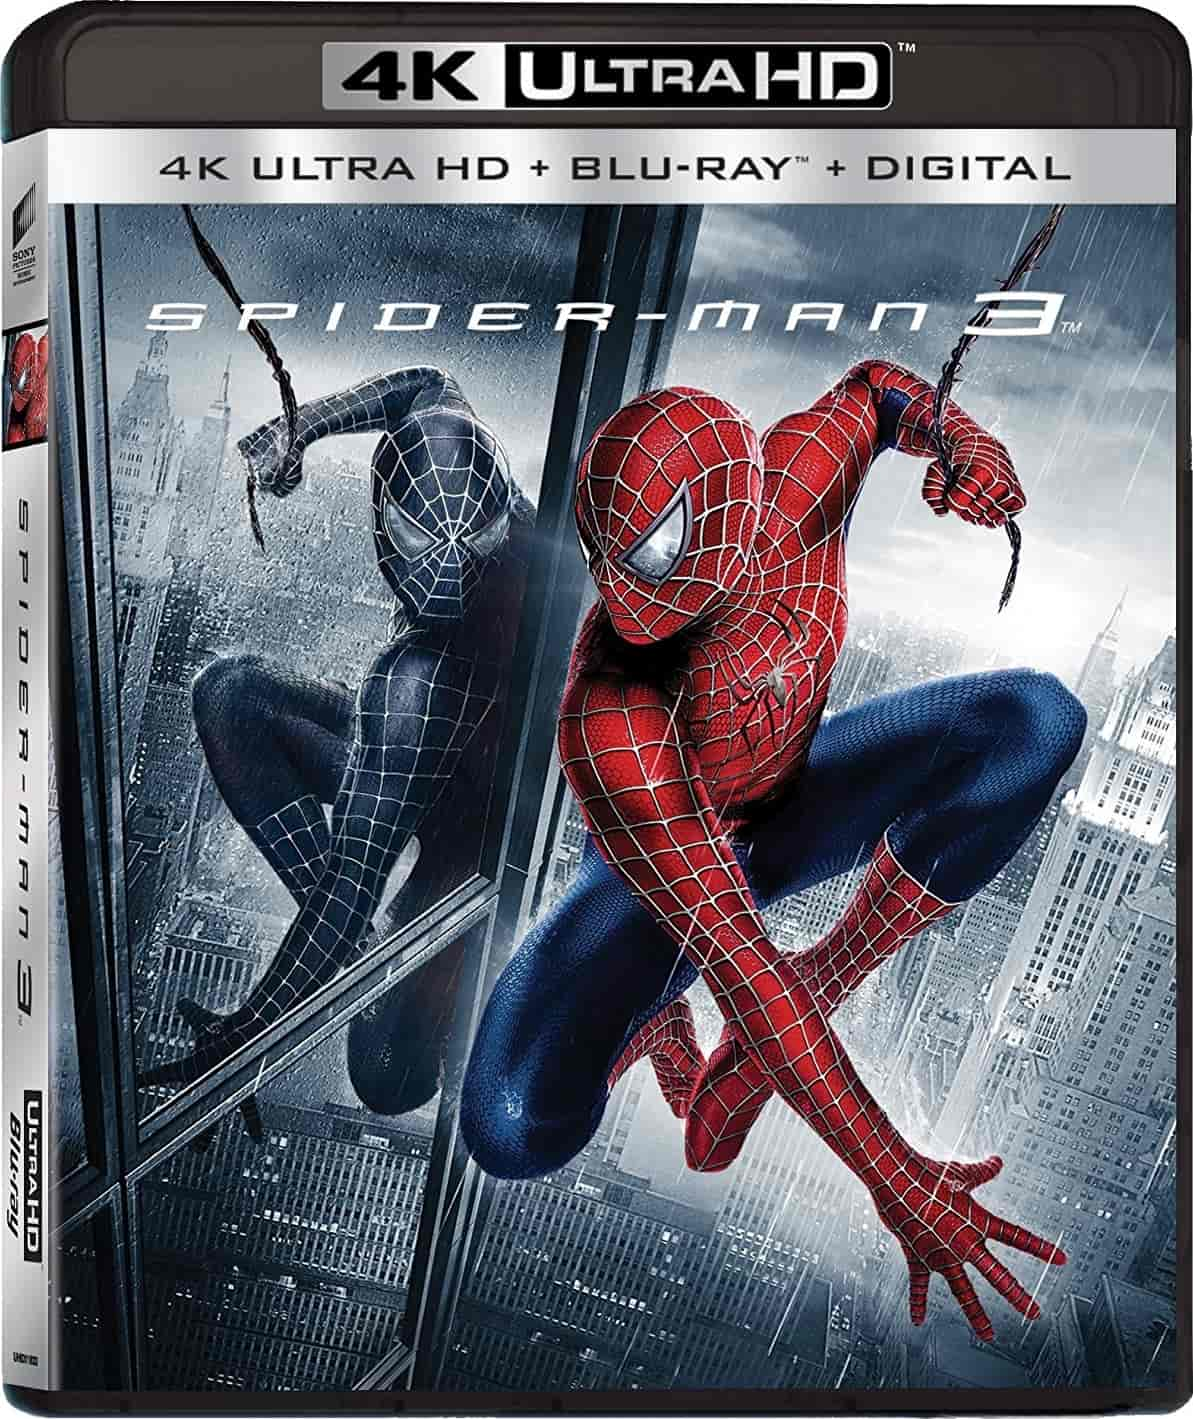 Spider-Man 3 2007 4K RIP Ultra HD 2160p